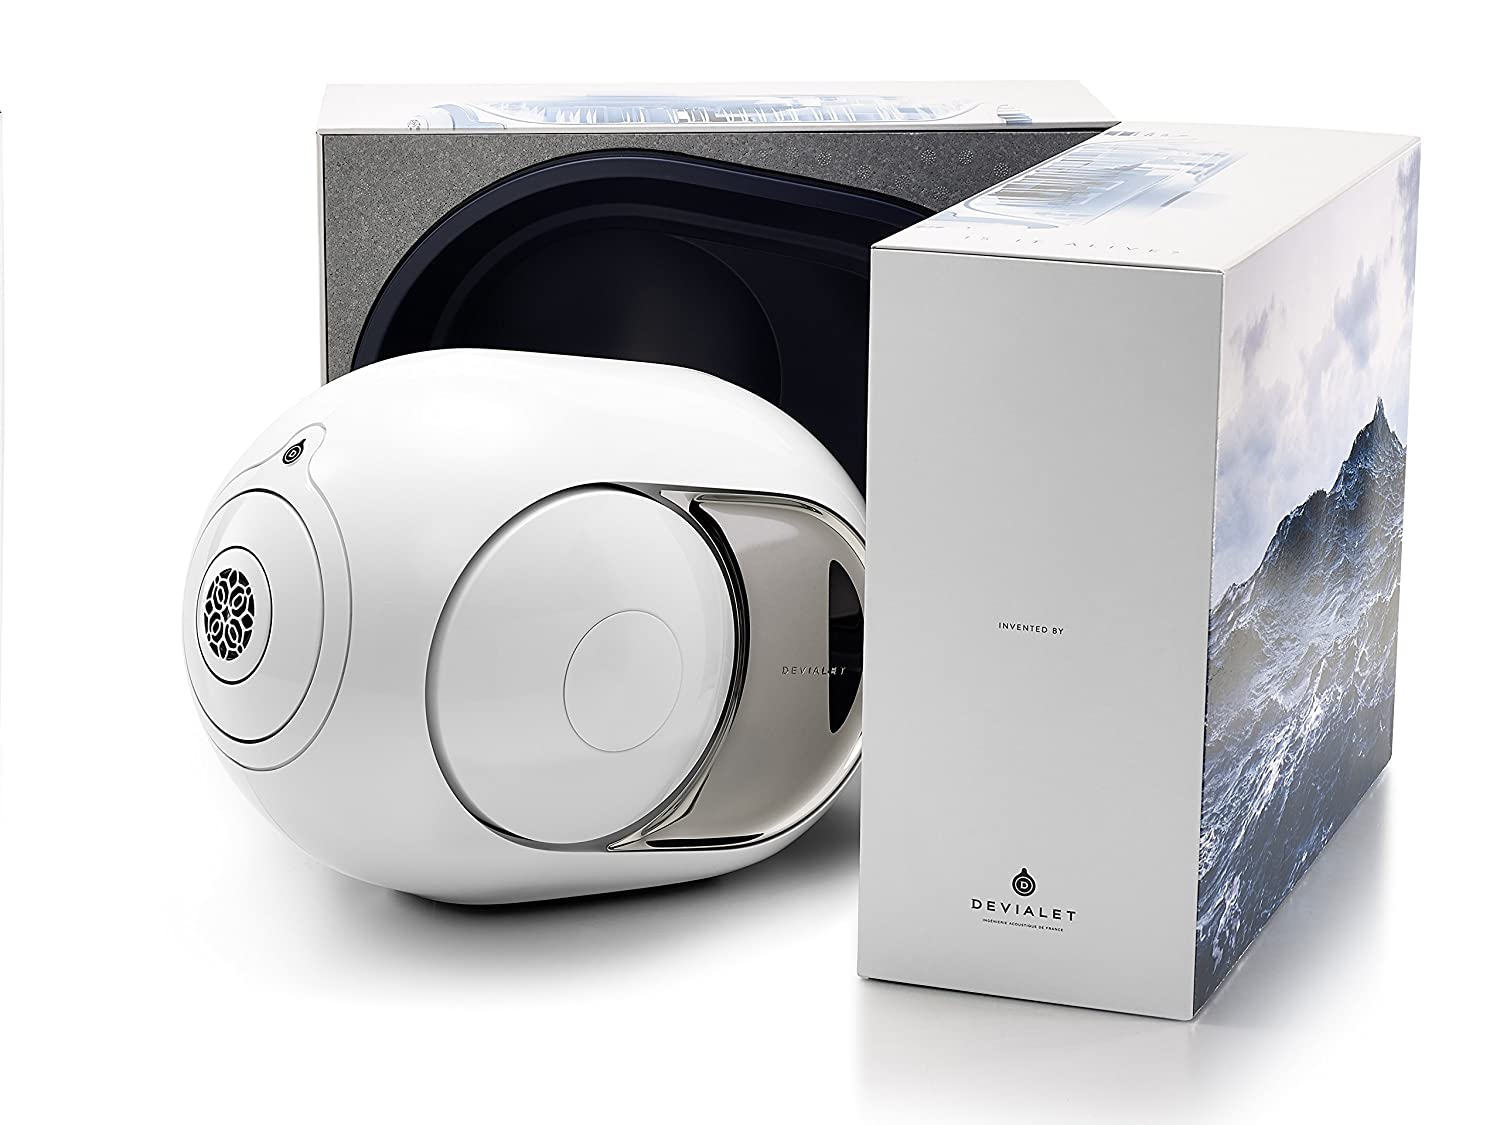 Devialet Phantom loudest bluetooth speakers